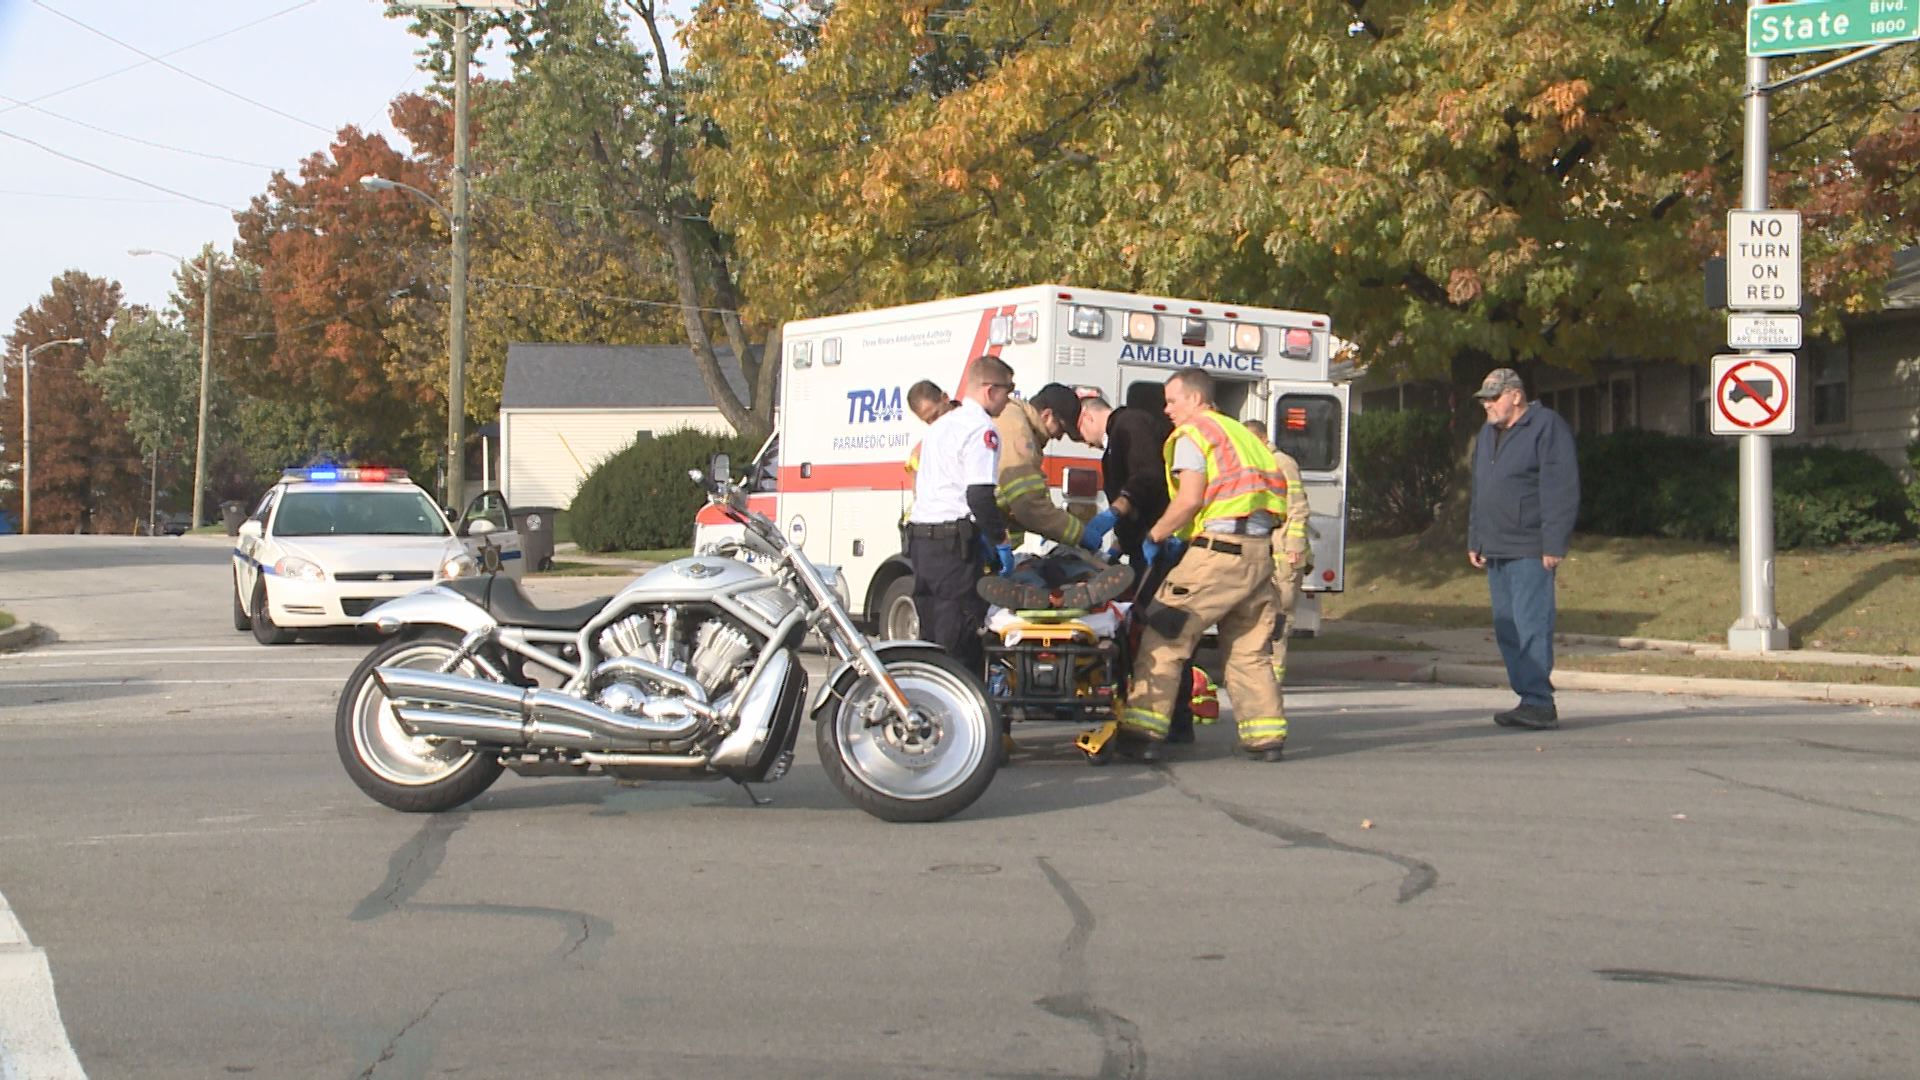 TYLER AND STATE MOTORCYCLE ACCIDENT PIC_1540931688246.jpg.jpg